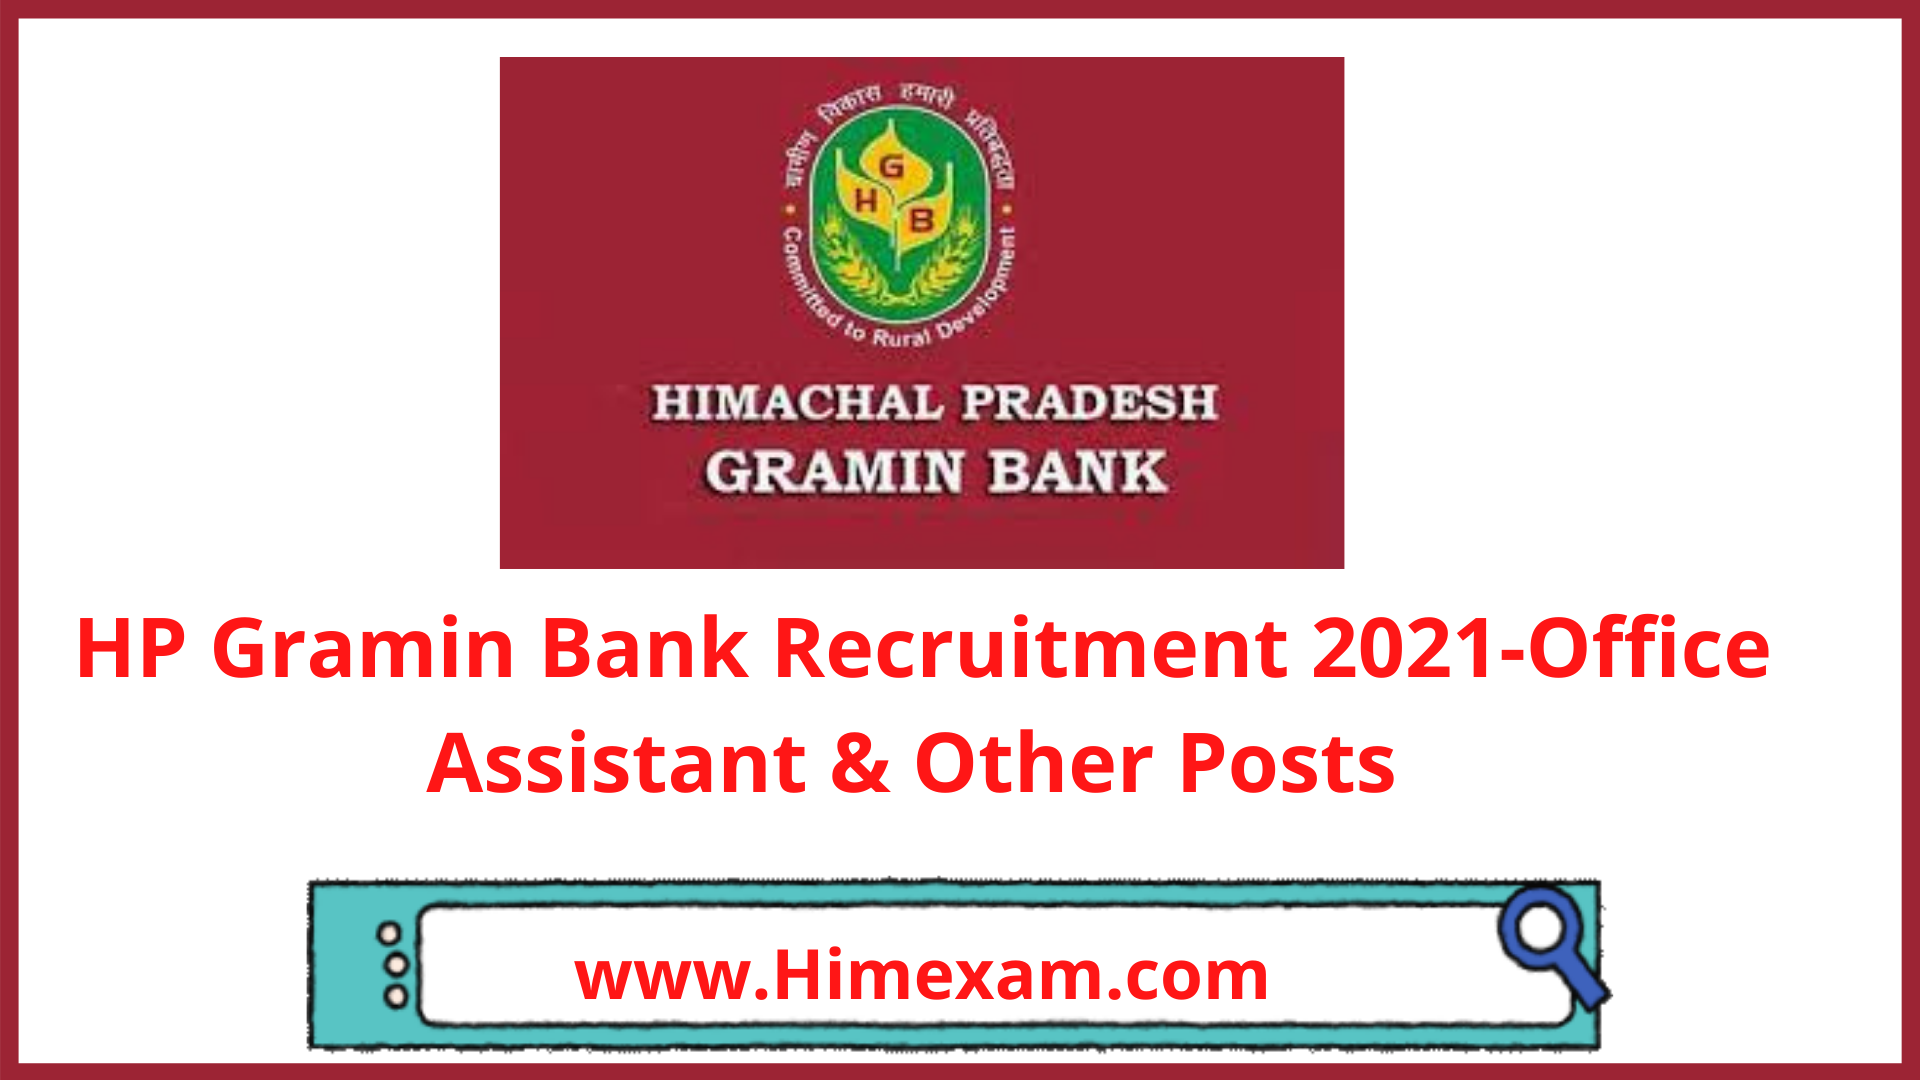 HP Gramin Bank Recruitment 2021-Office Assistant & Other Posts